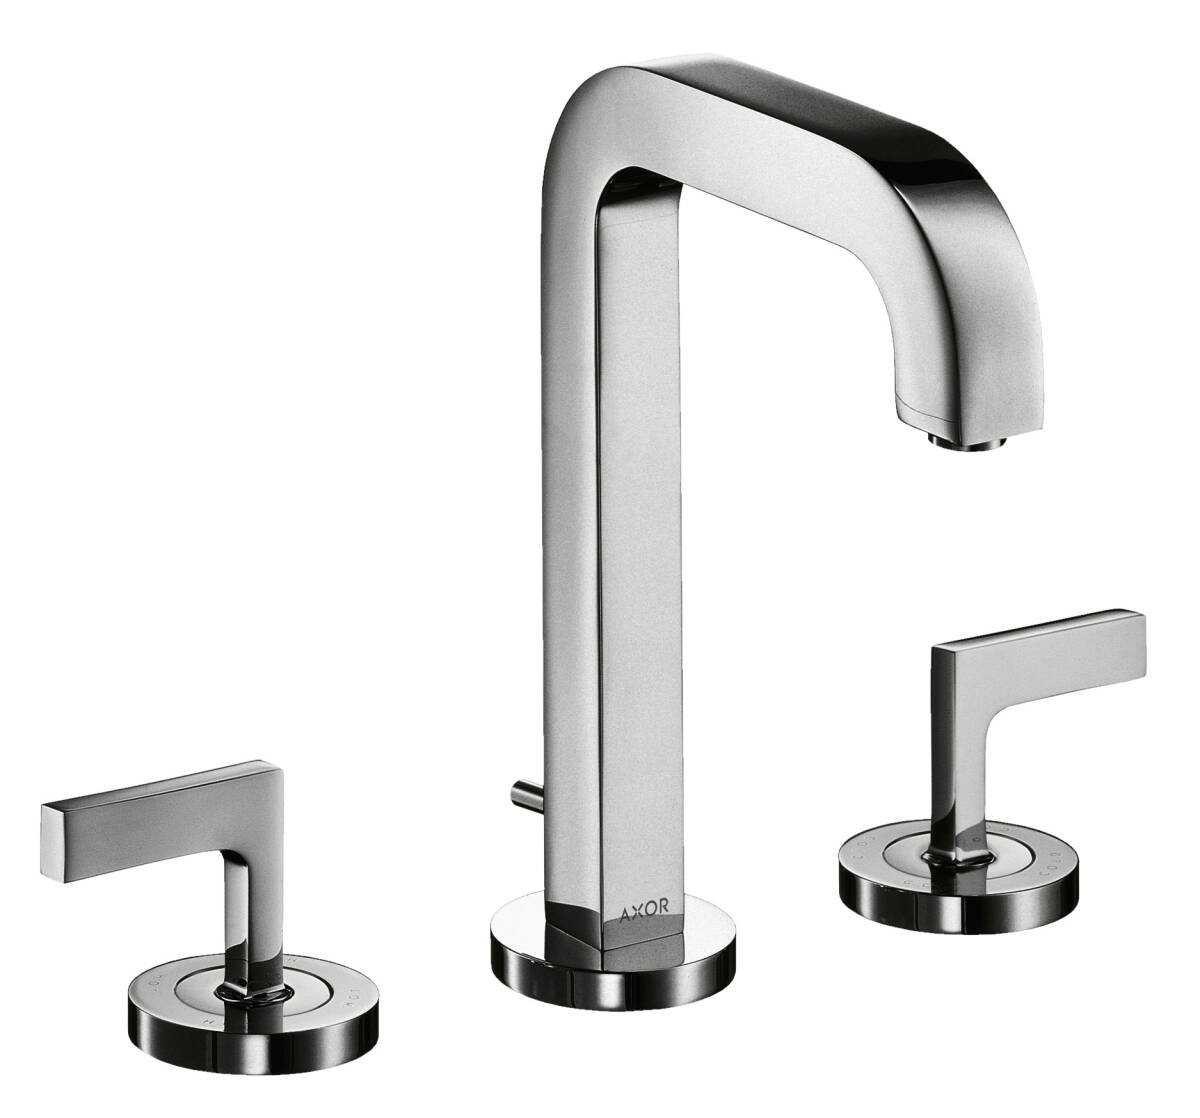 AXOR Citterio Widespread Faucet with Lever Handles, 1.2 GPM, chrome, 39135001